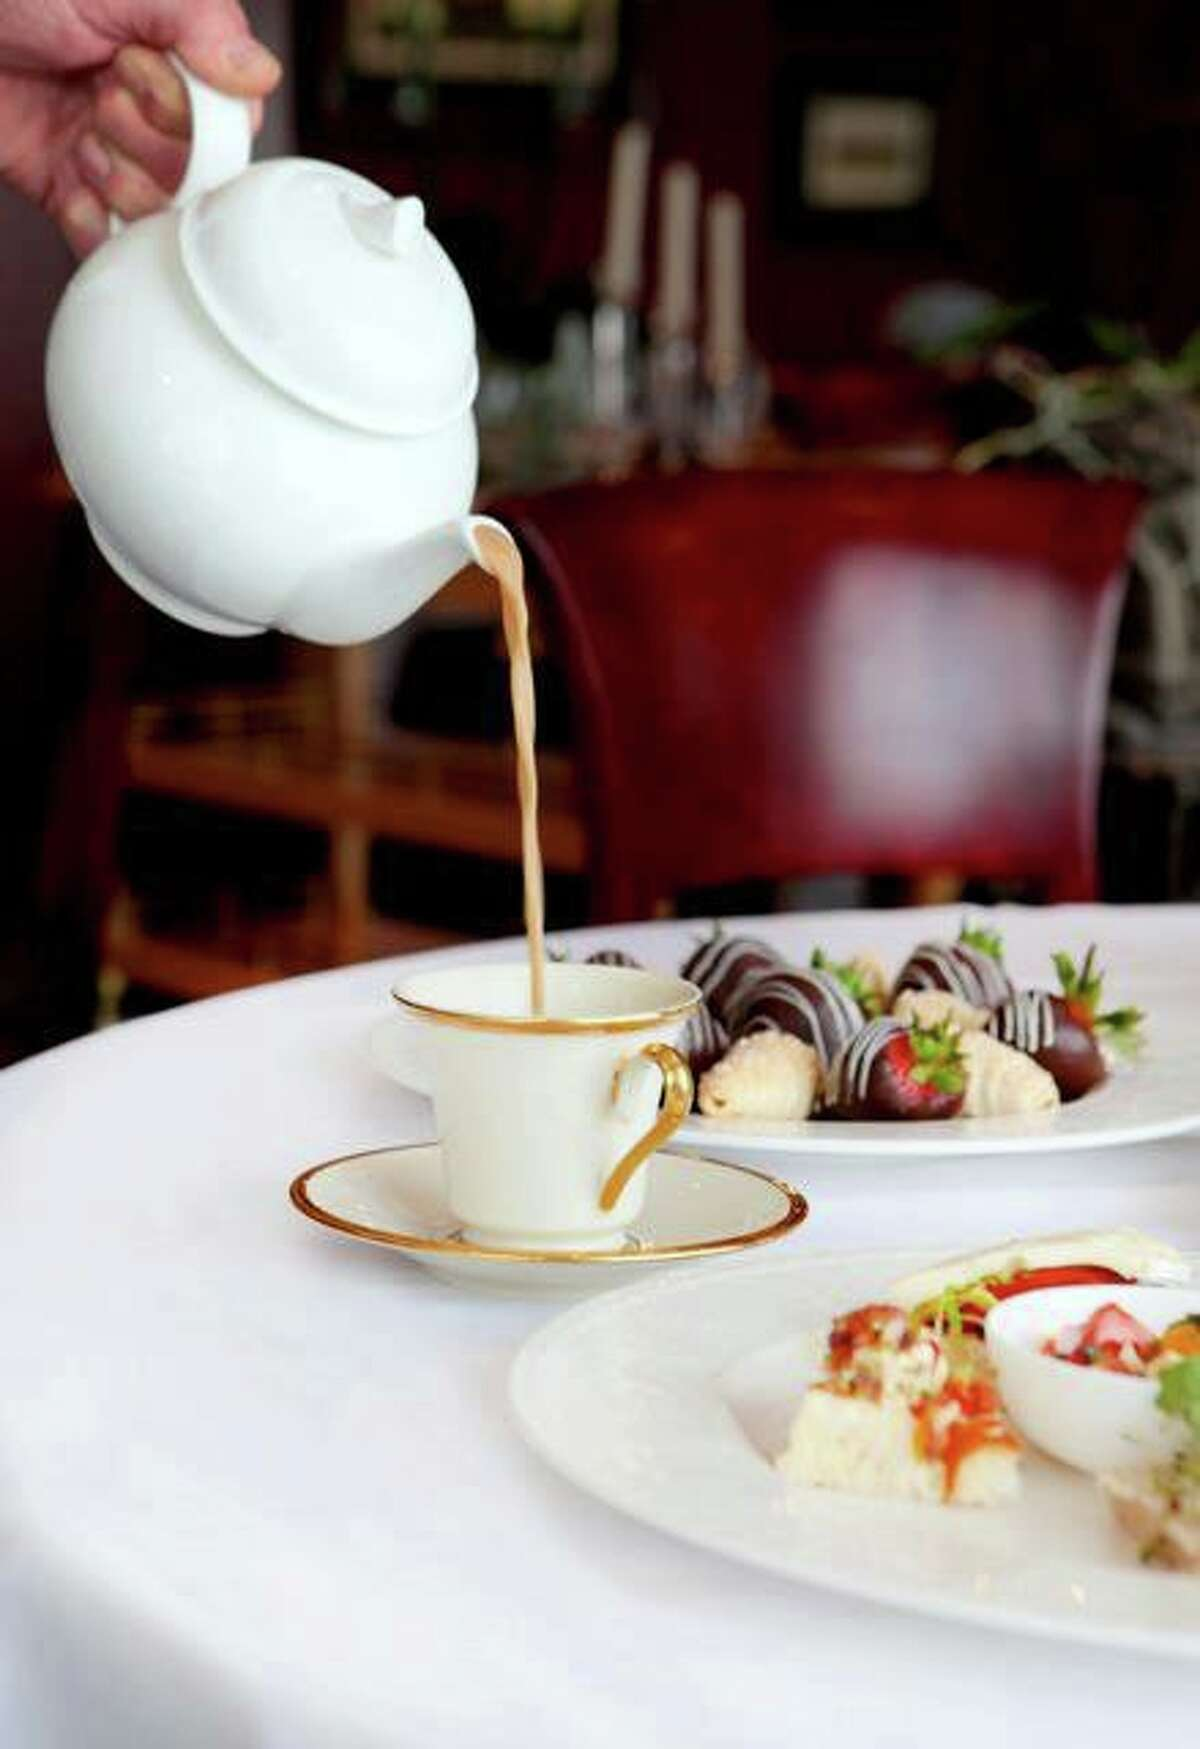 Kiran's is one of the few Houston restaurants offering formal afternoon tea service.